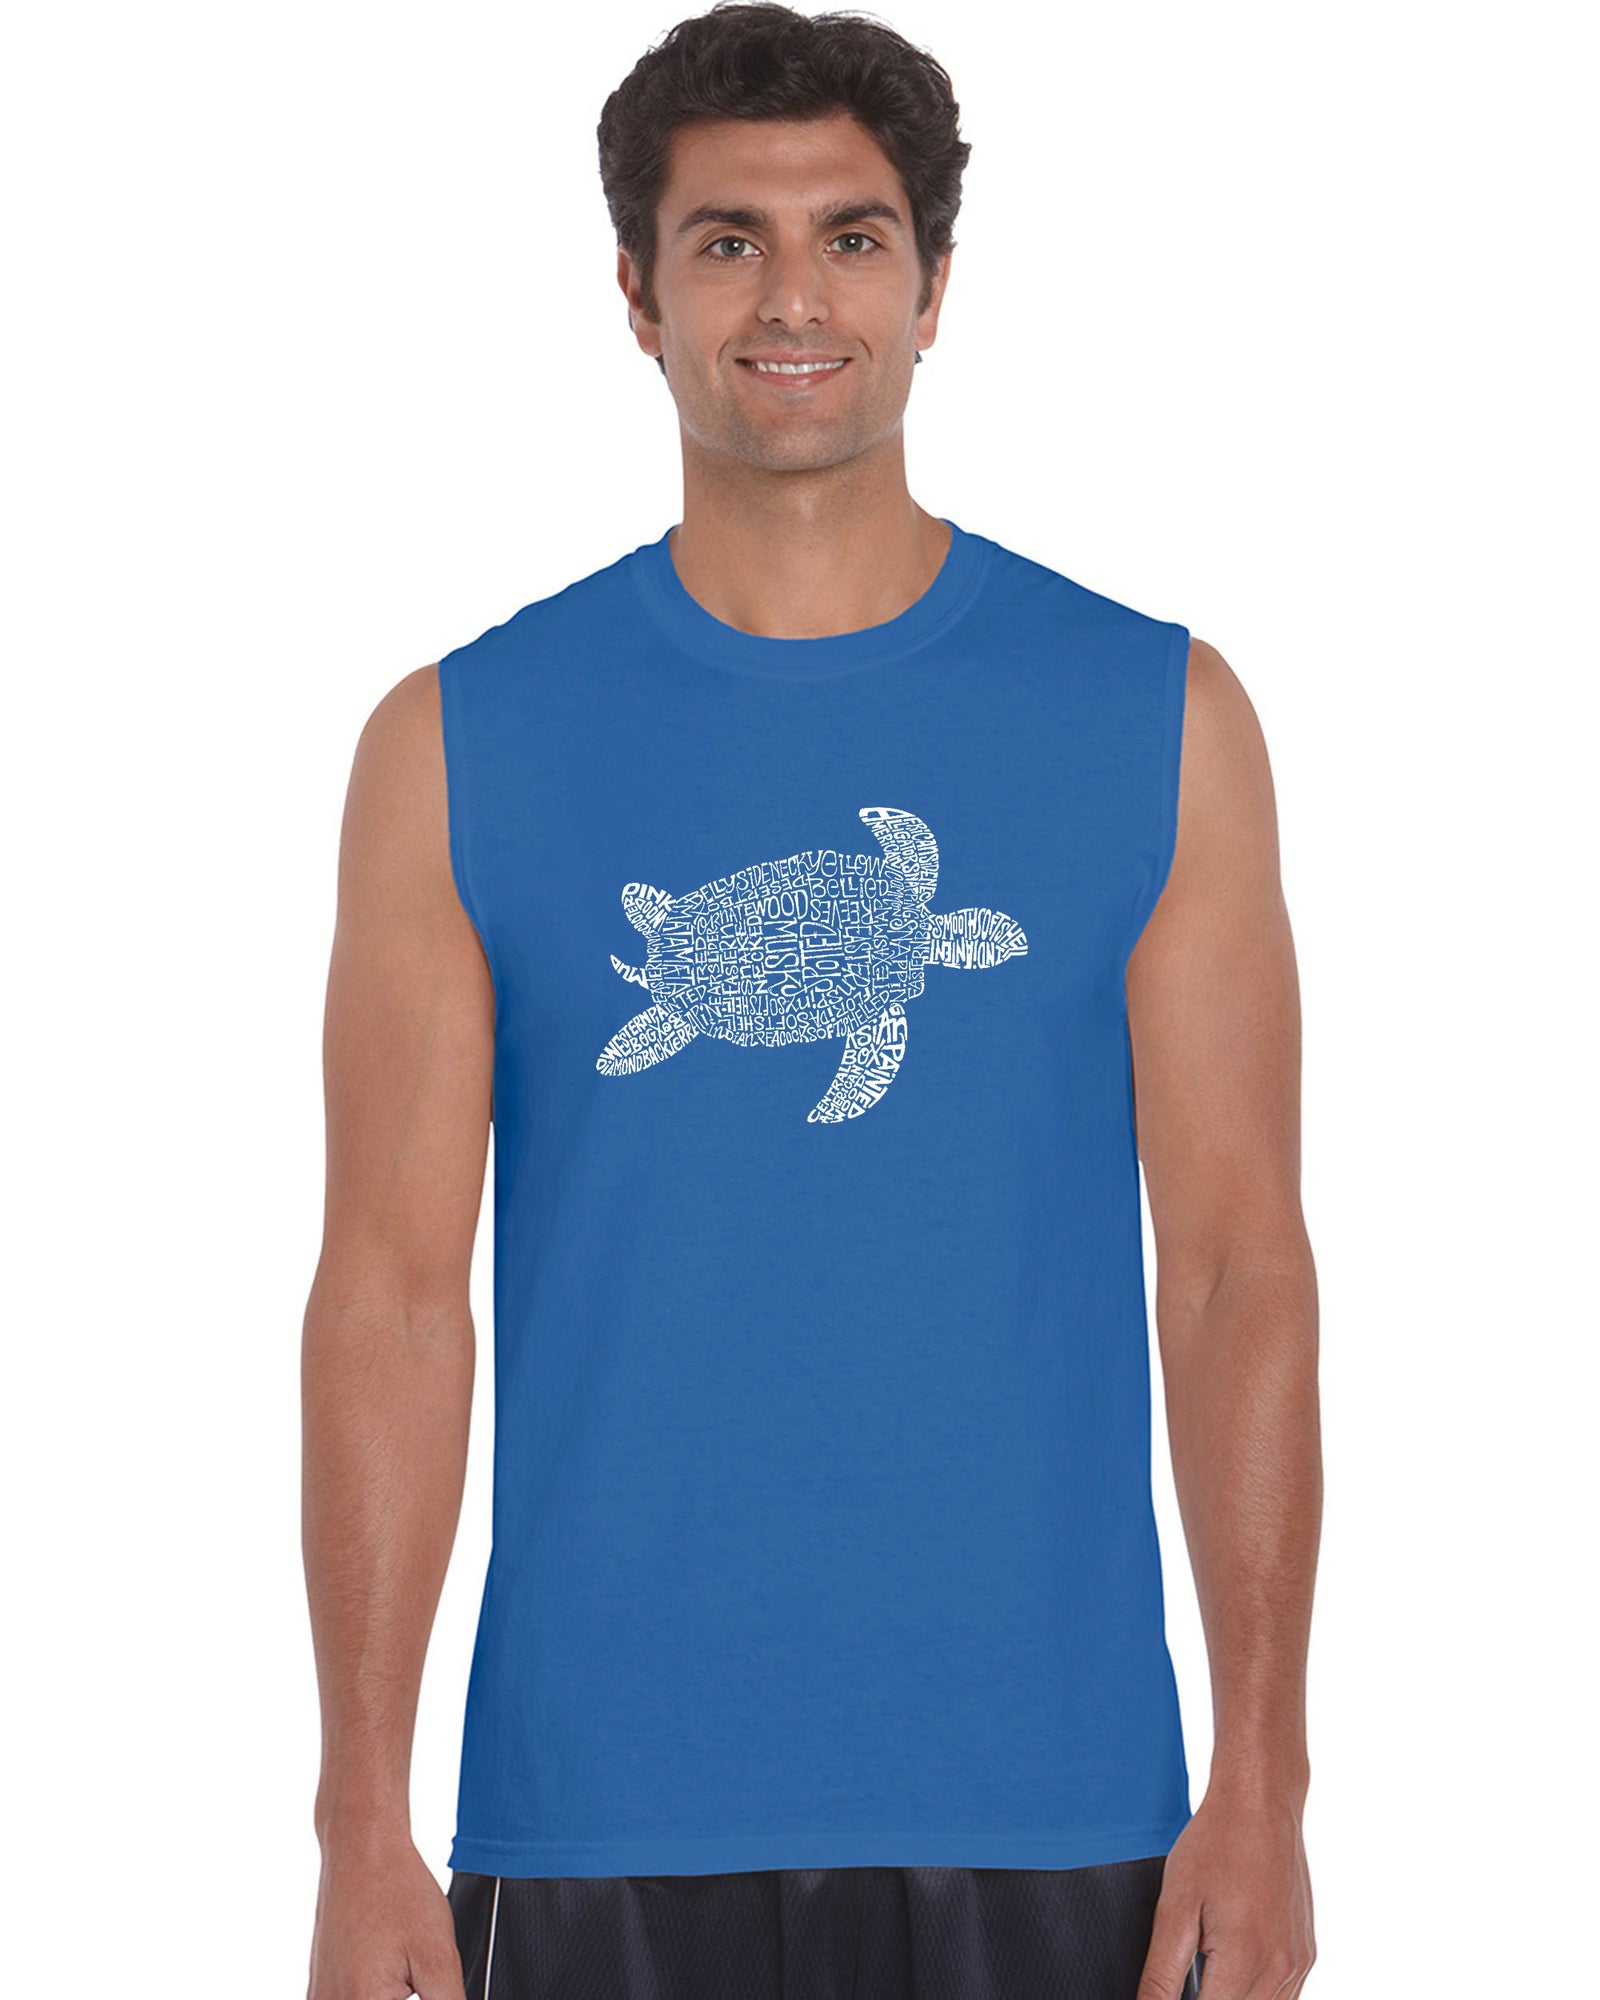 Men's Word Art Sleeveless T-shirt - Turtle